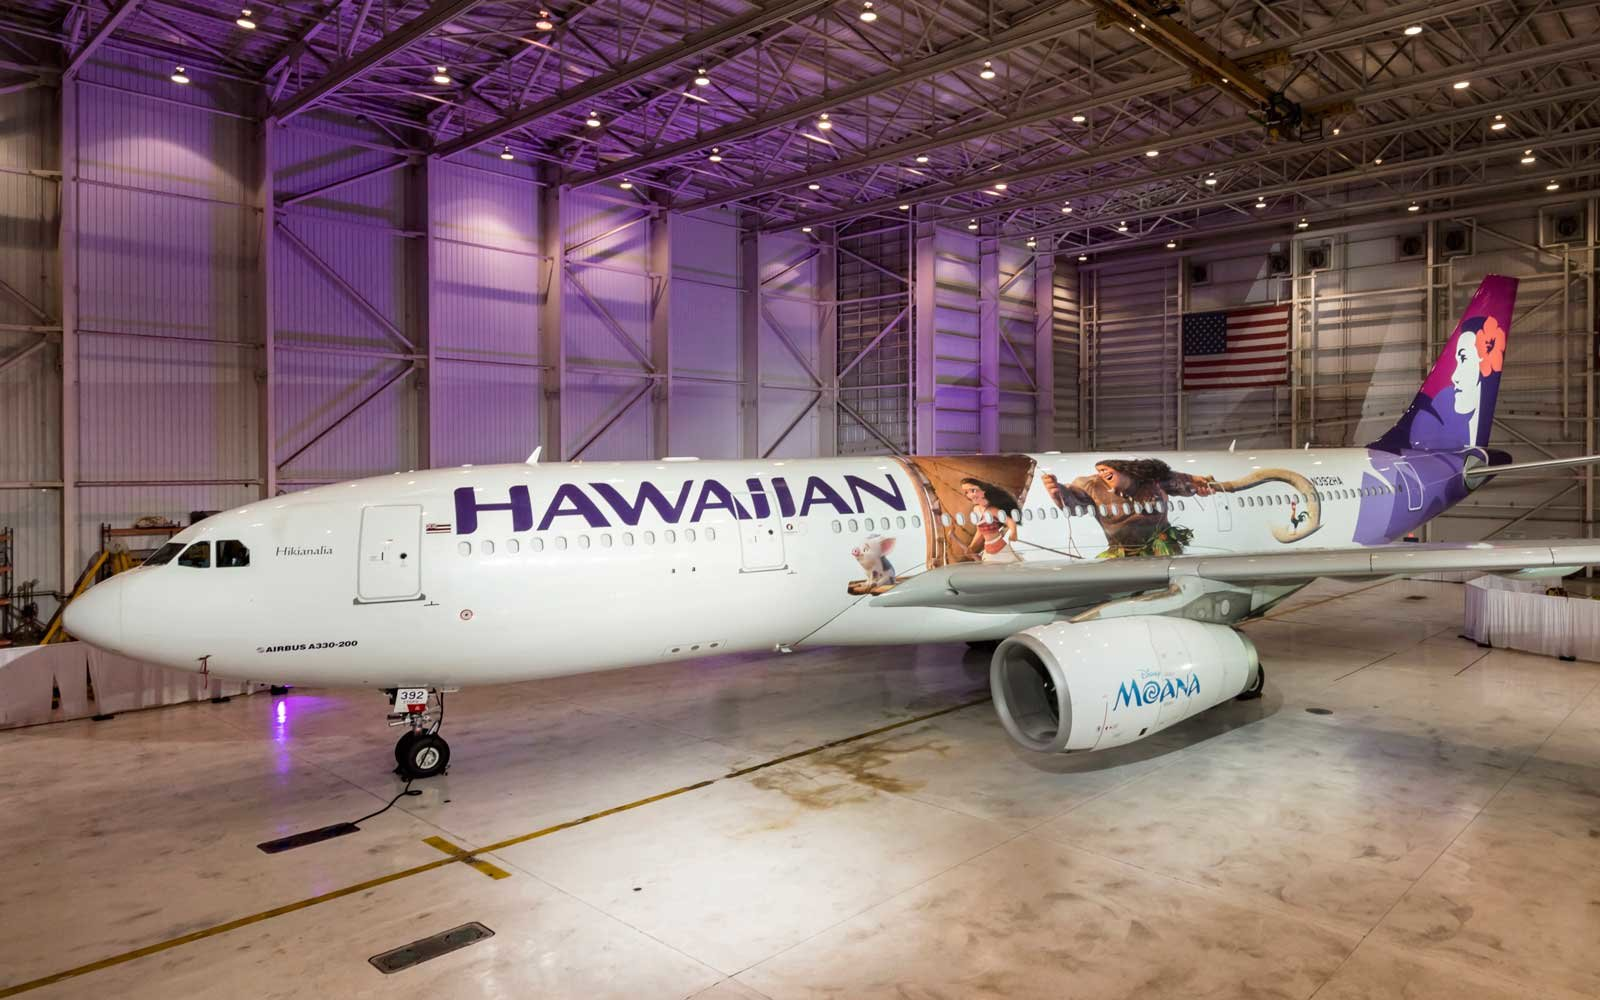 Disney Moana Plane Hawaiian Airlines